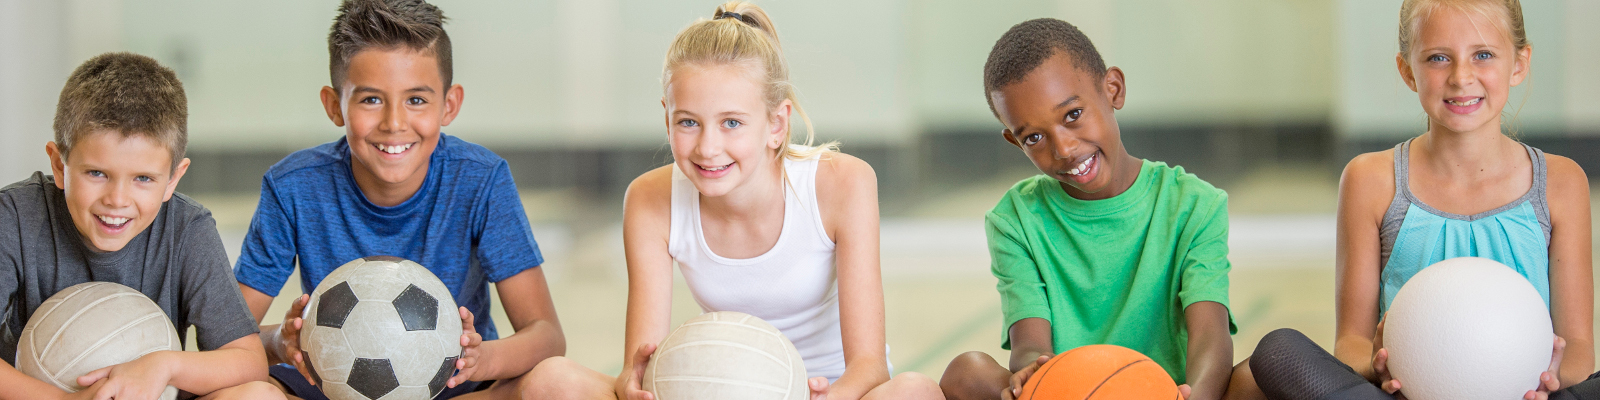 Children sitting on a gym floor with different sports balls